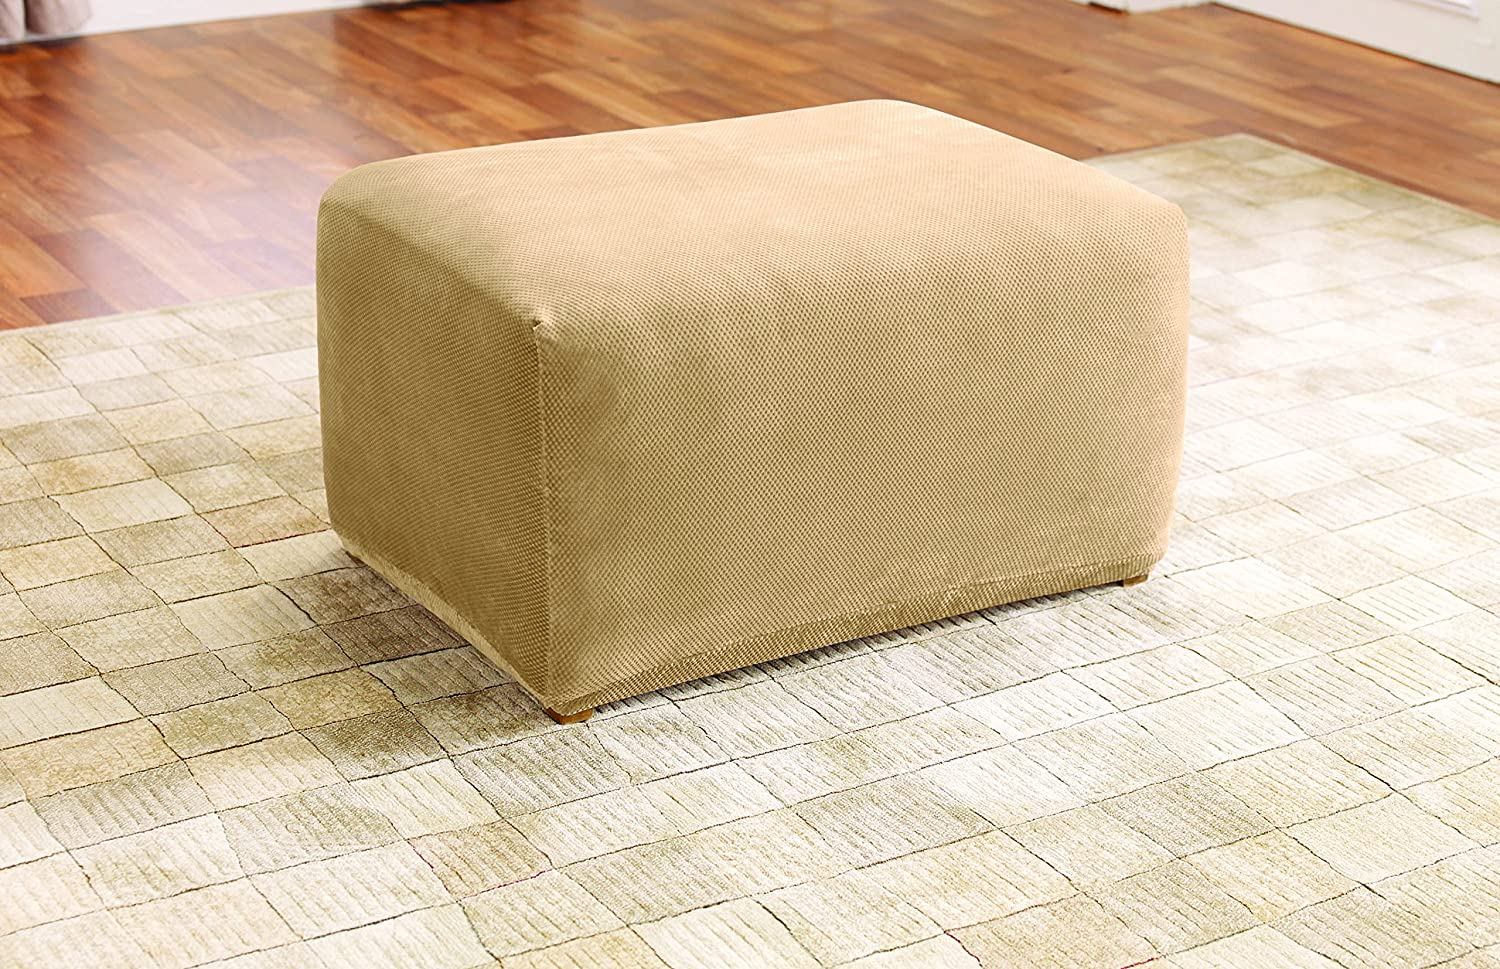 ottoman redo how cover slip removed friendly oversized slipcover can is covered washed furniture kid diy that easily and be